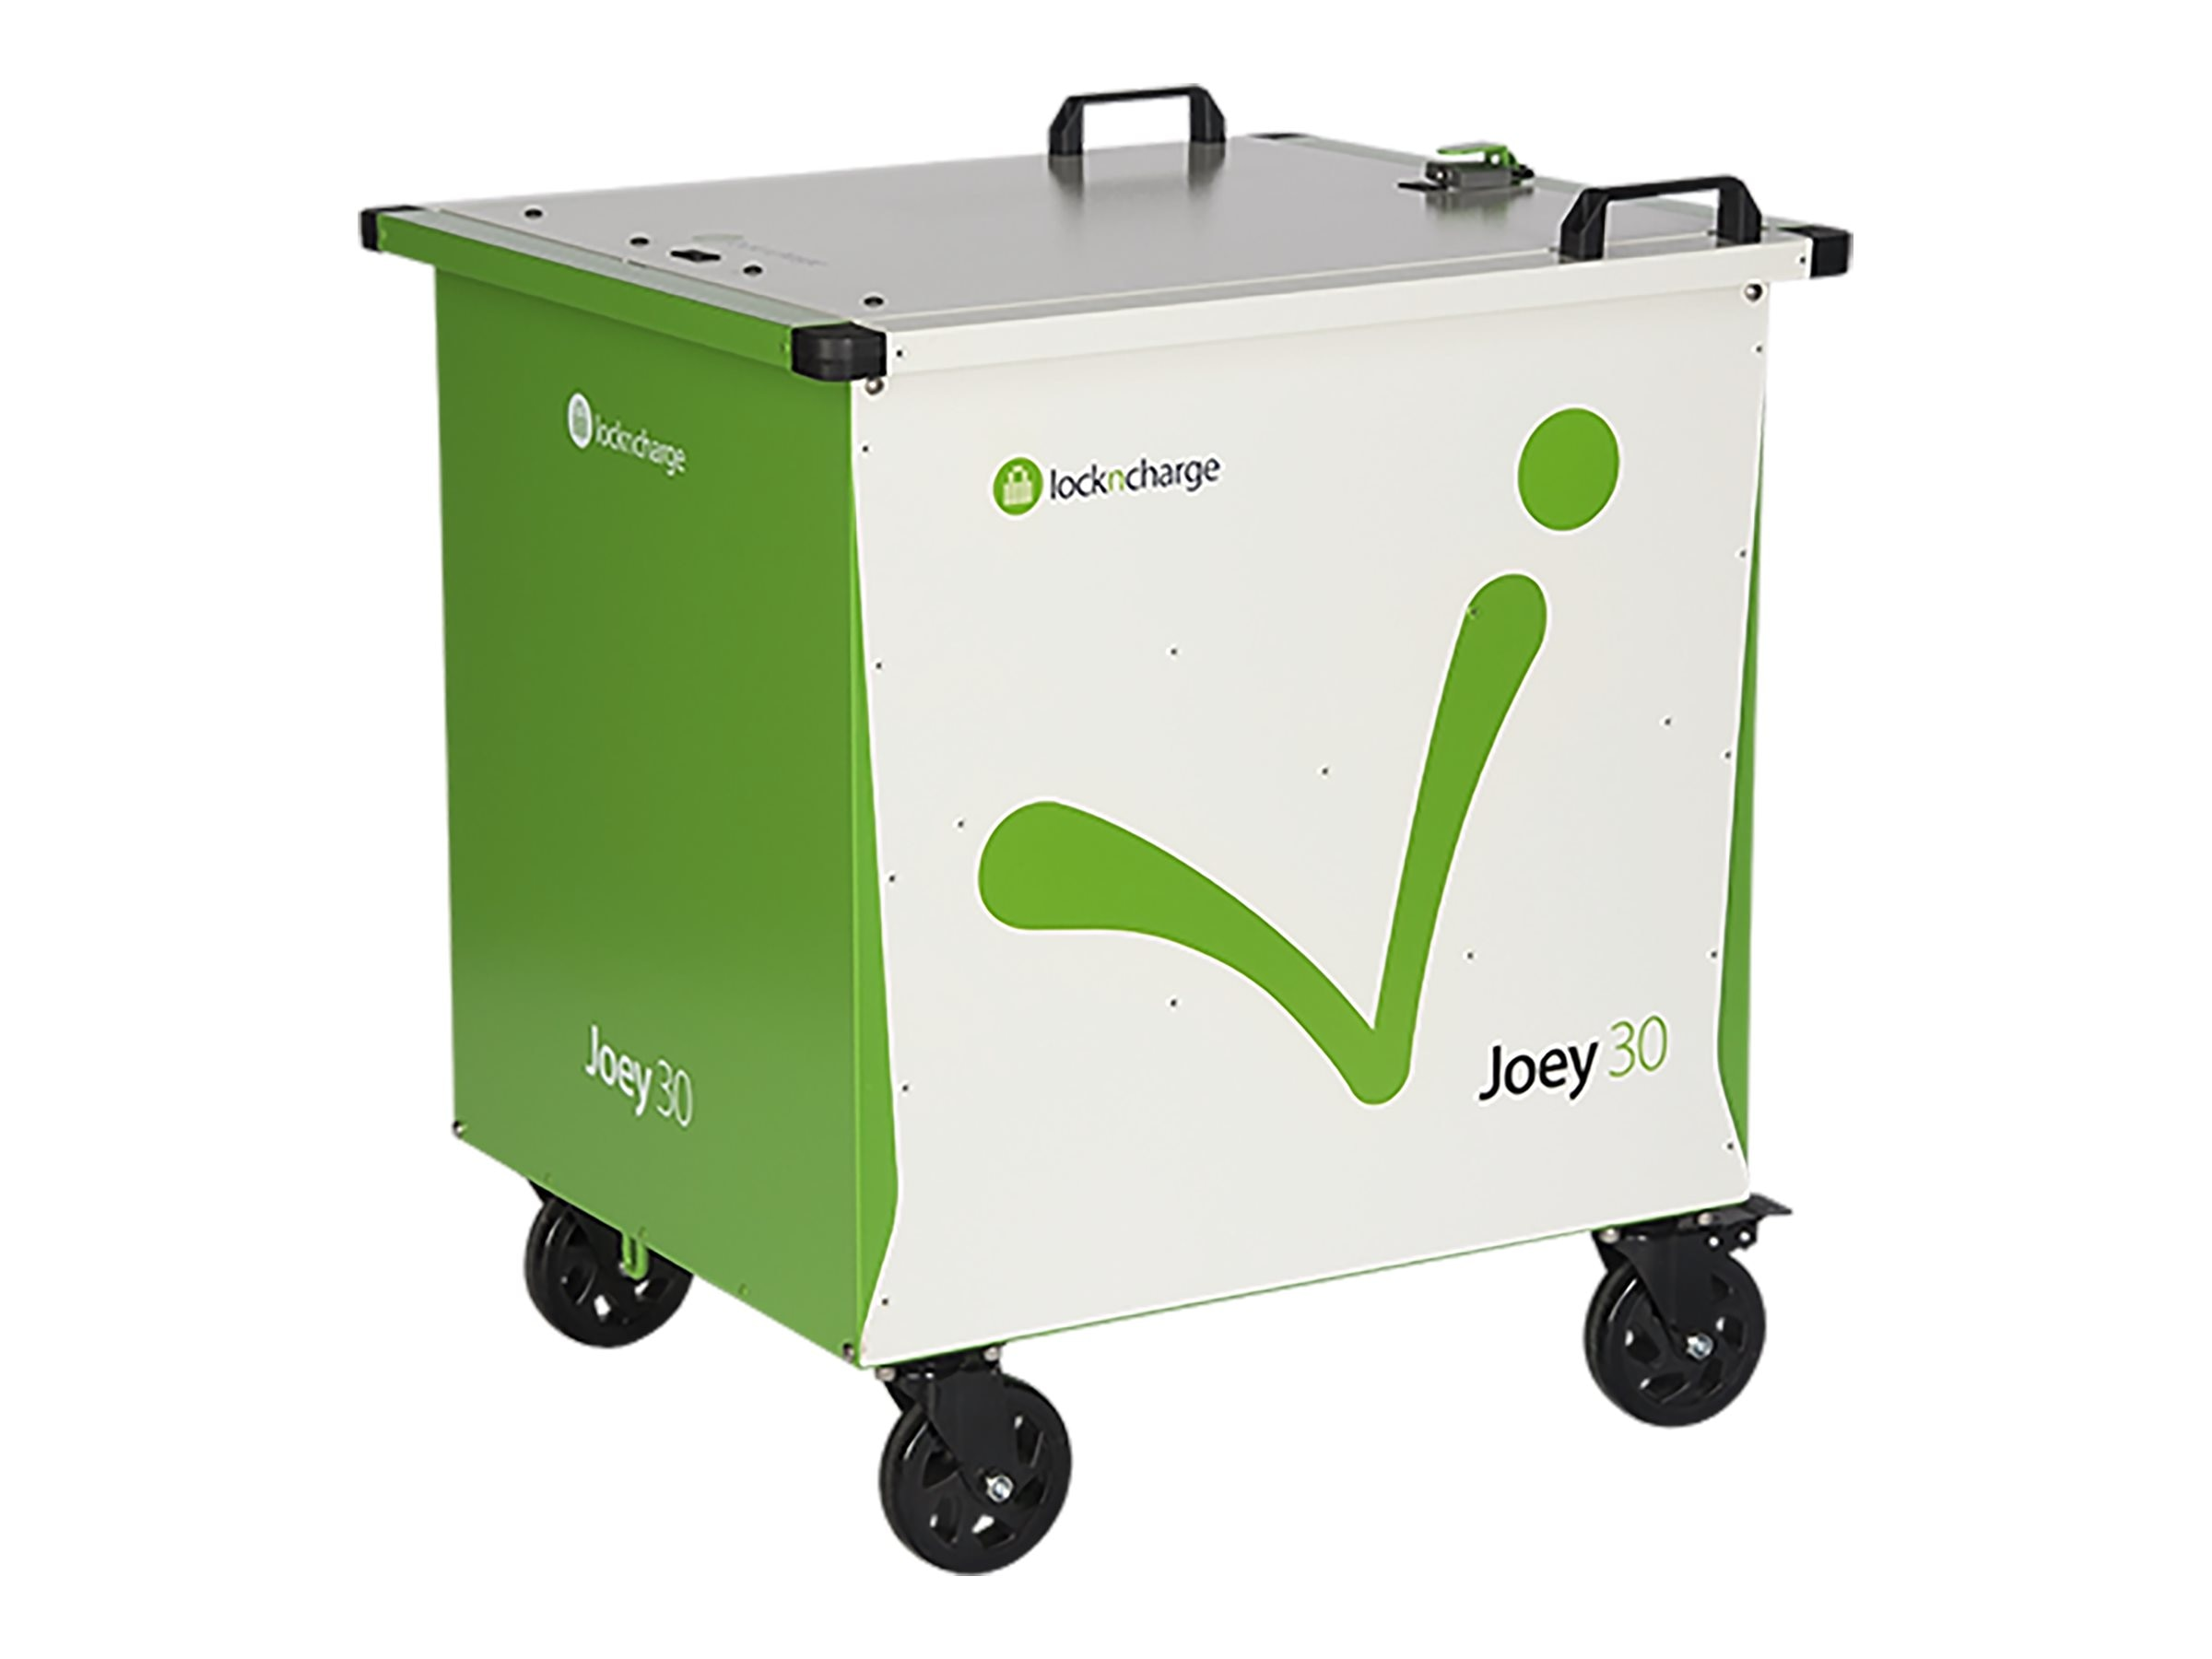 Lock N Charge Joey 30 Cart